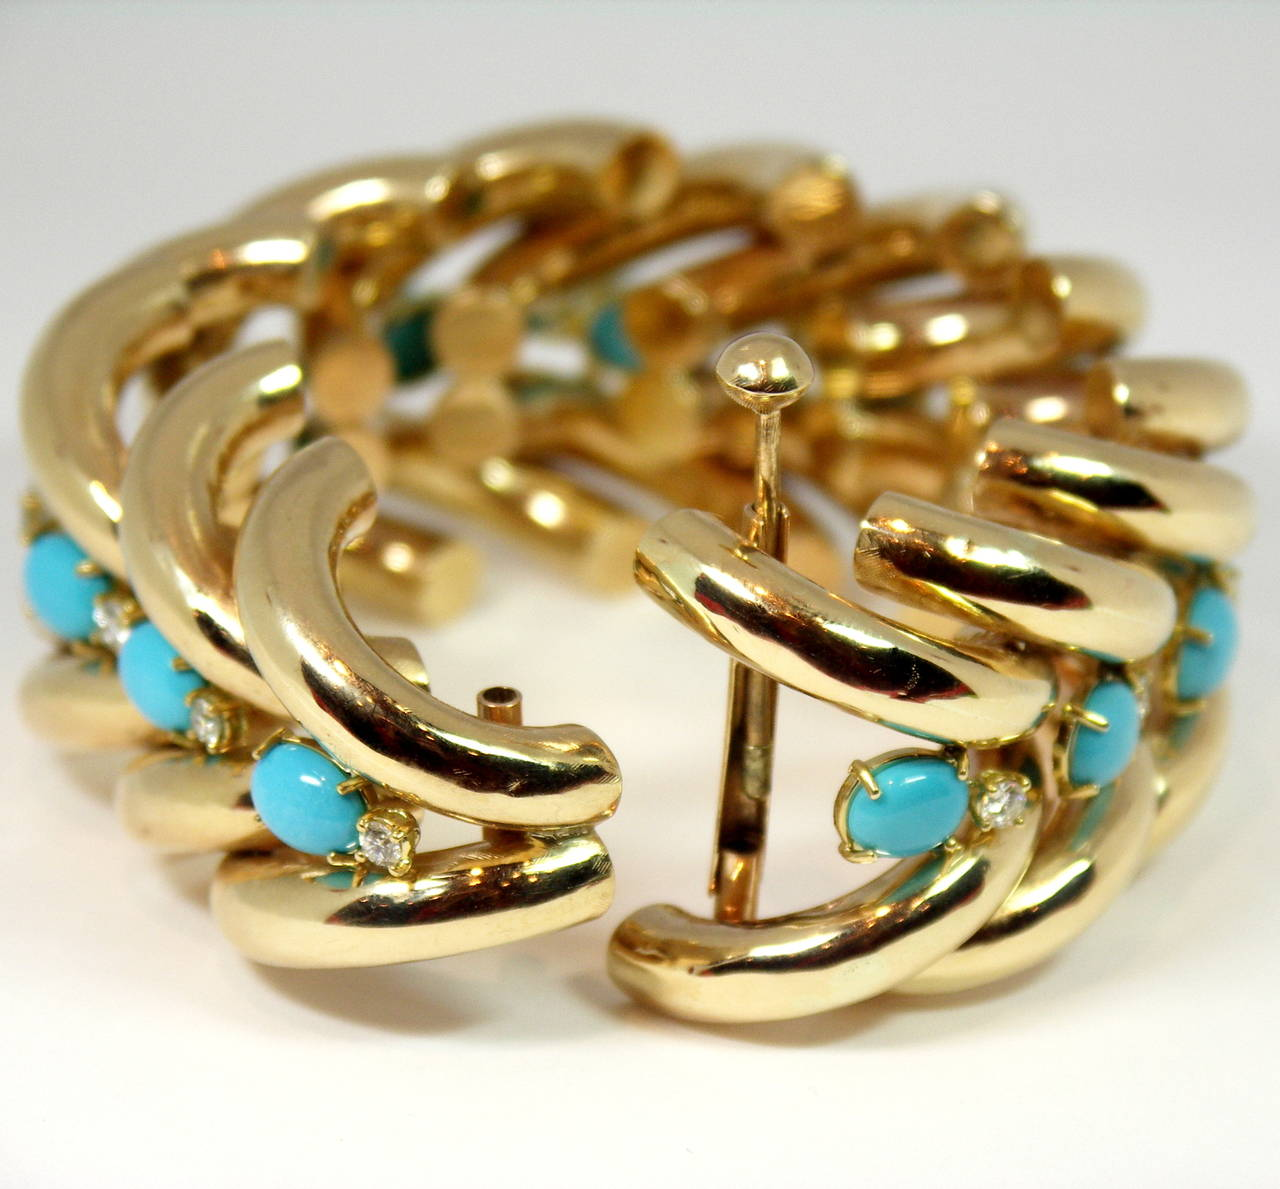 Split Design Turquoise Diamond Gold Bracelet In Excellent Condition For Sale In Blue Ridge, GA